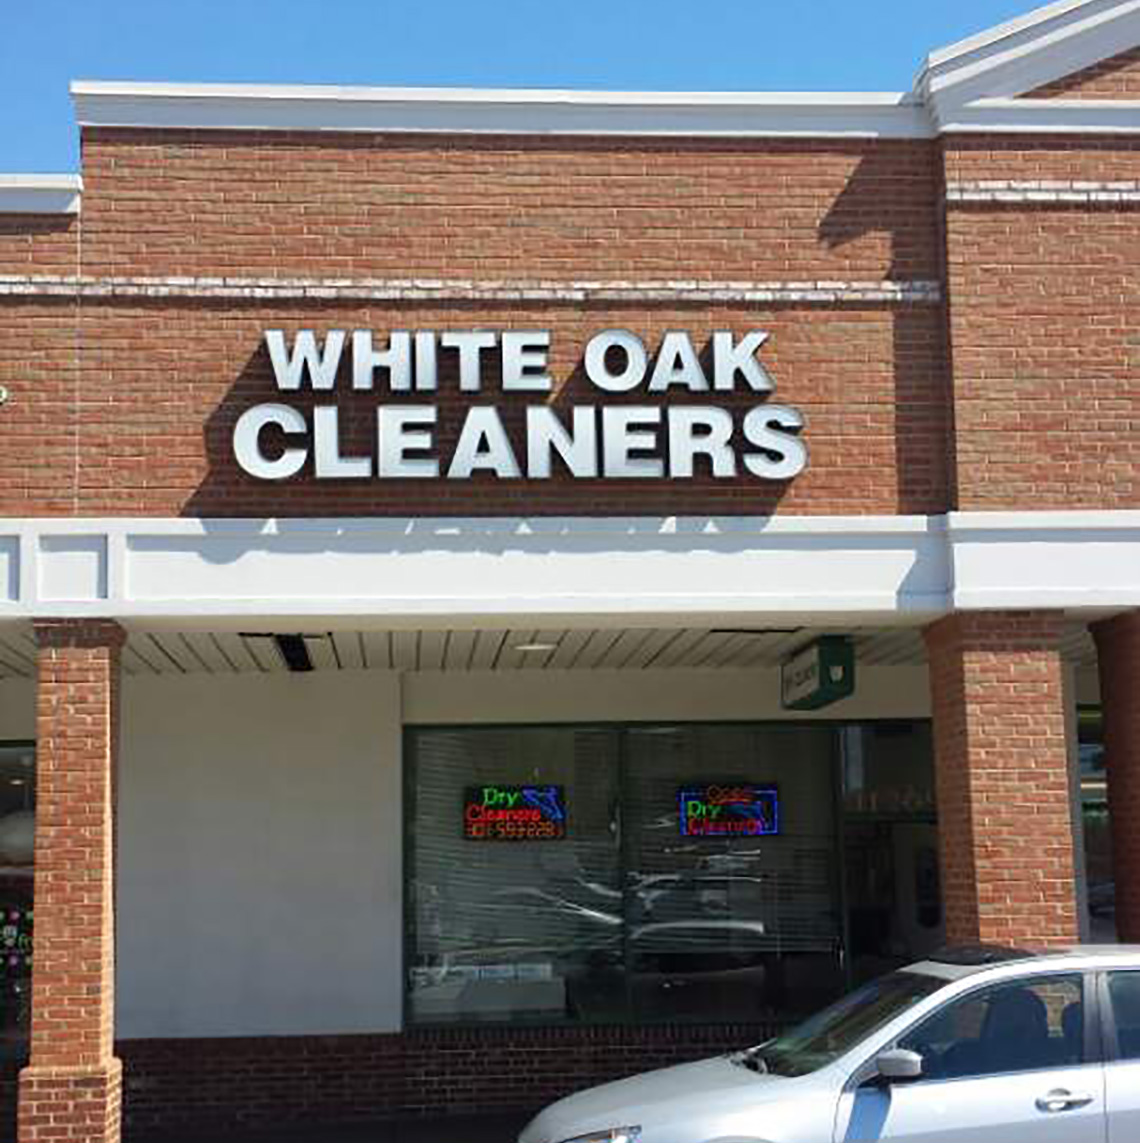 White oak cleaners 2